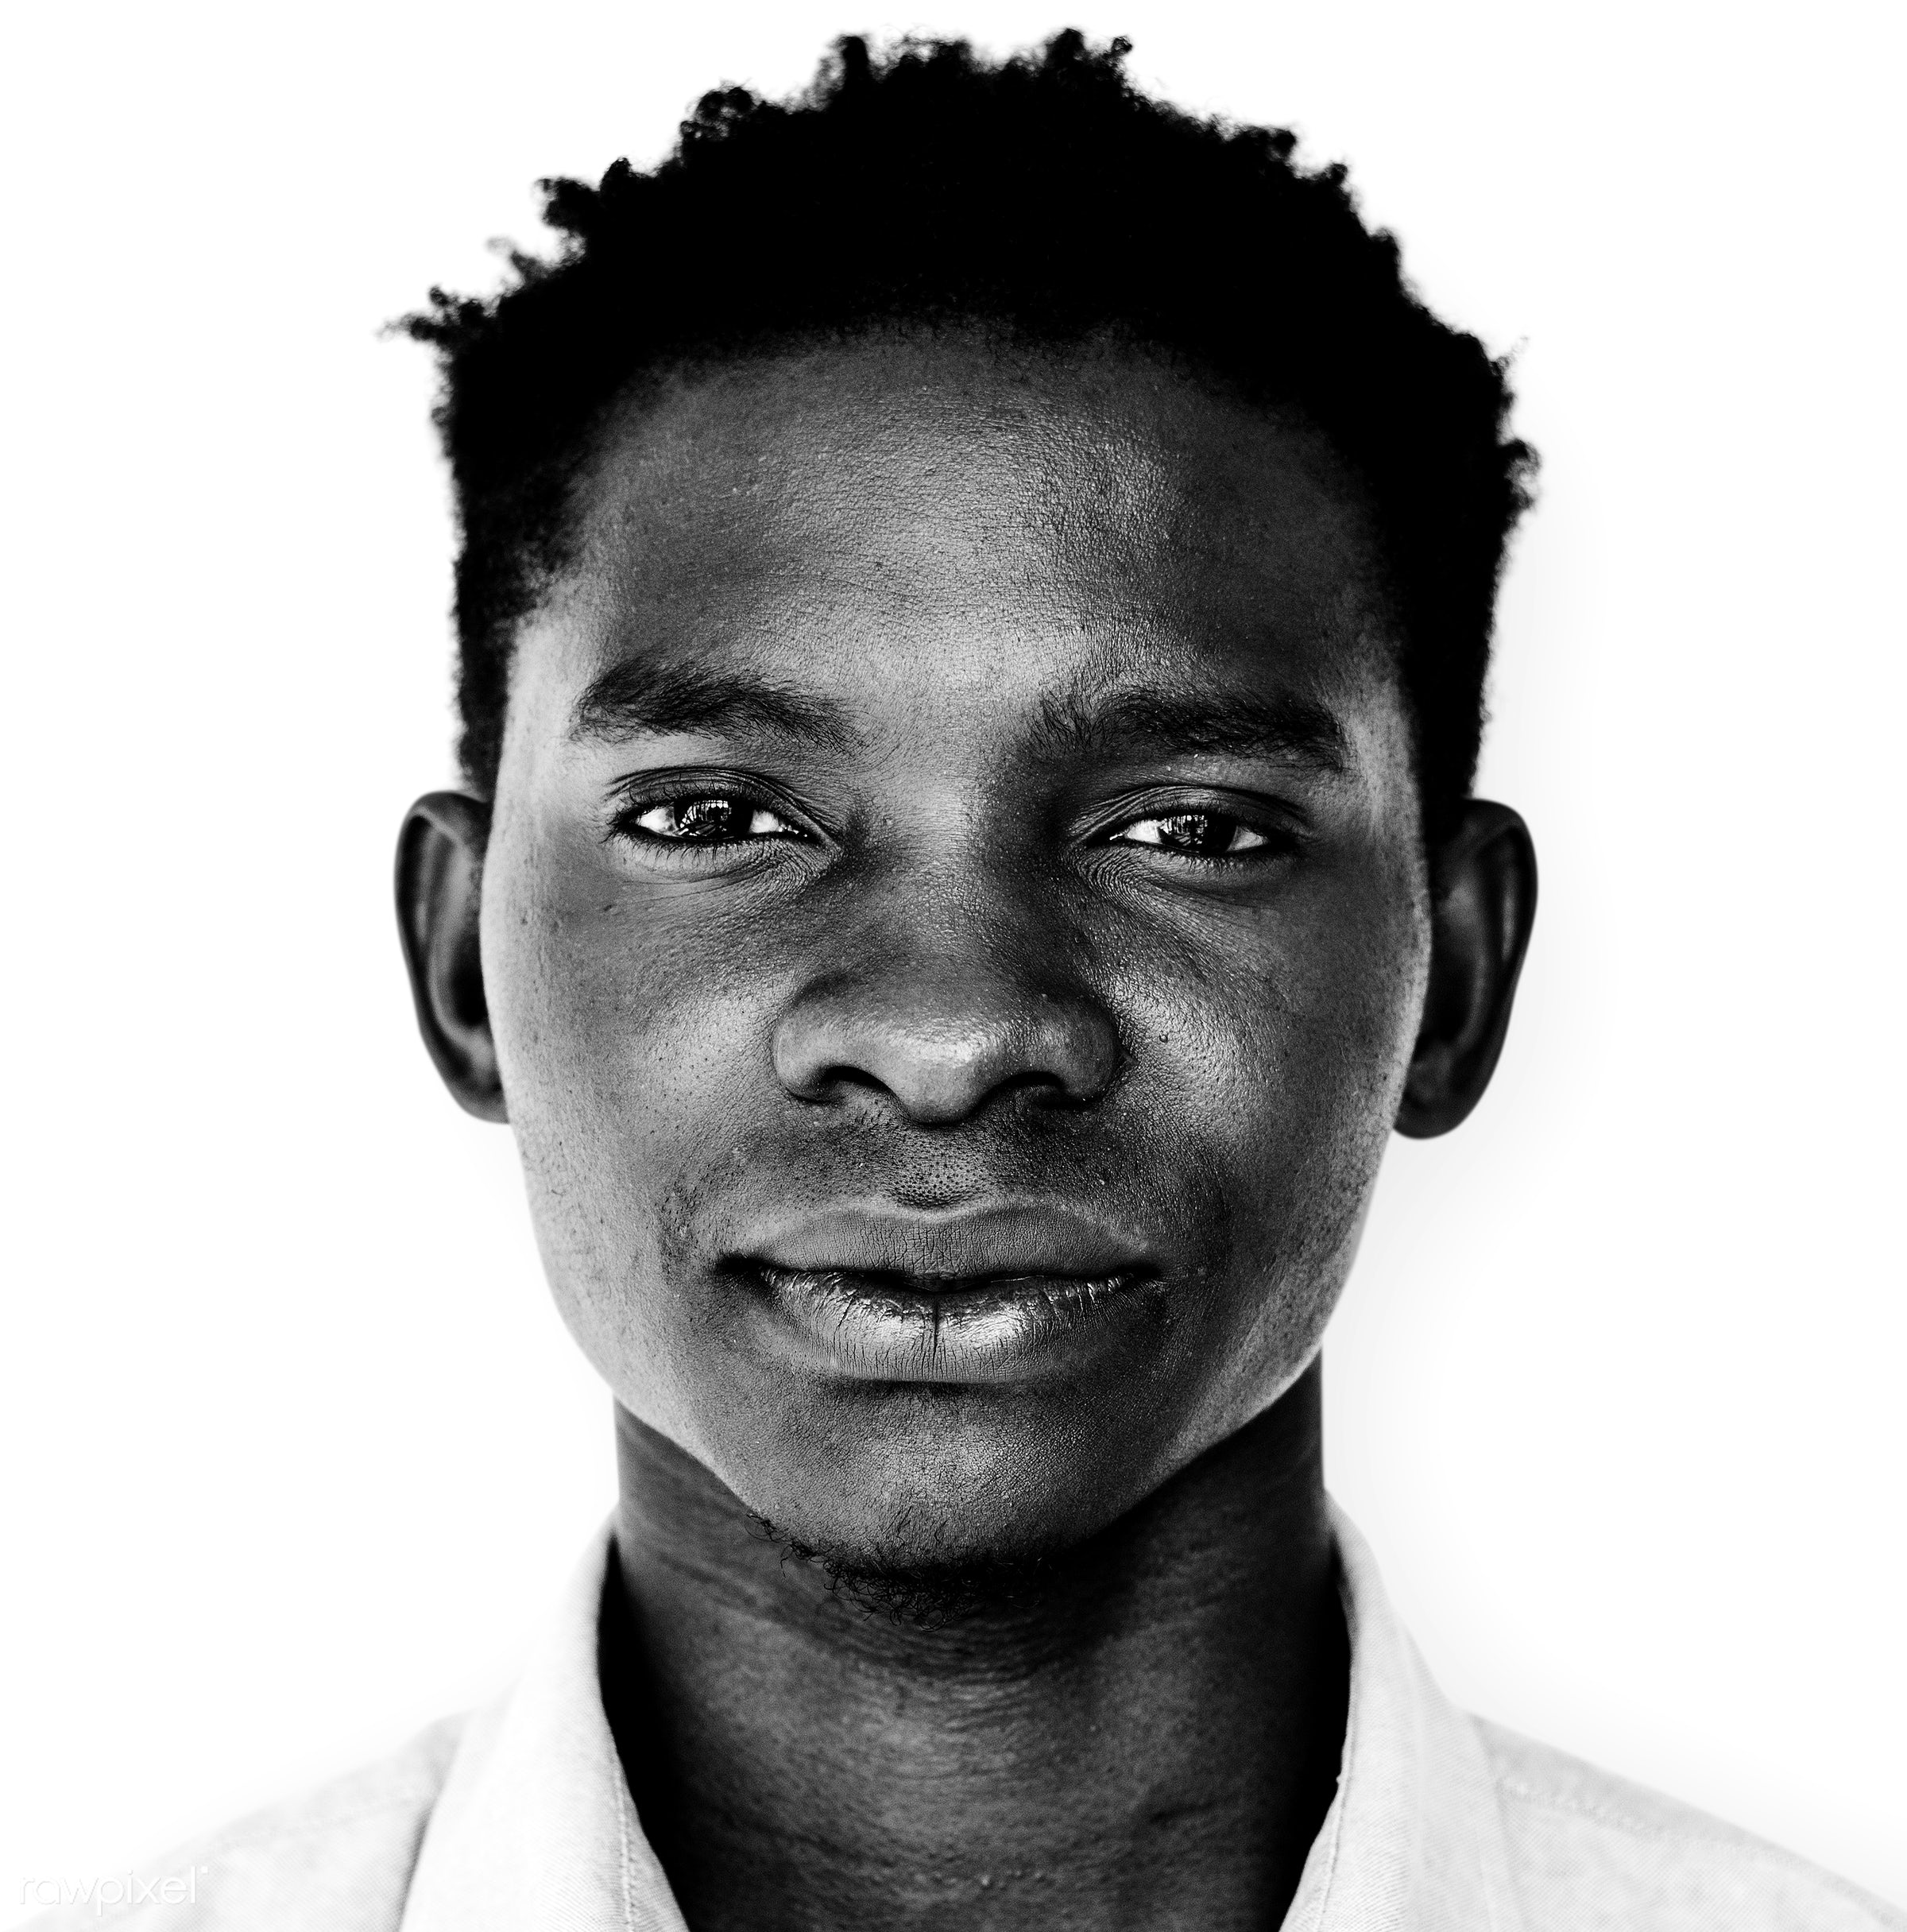 Portrait of an Ugandan man - african, african descent, alone, black, black and white, expression, face, feeling, grayscale,...